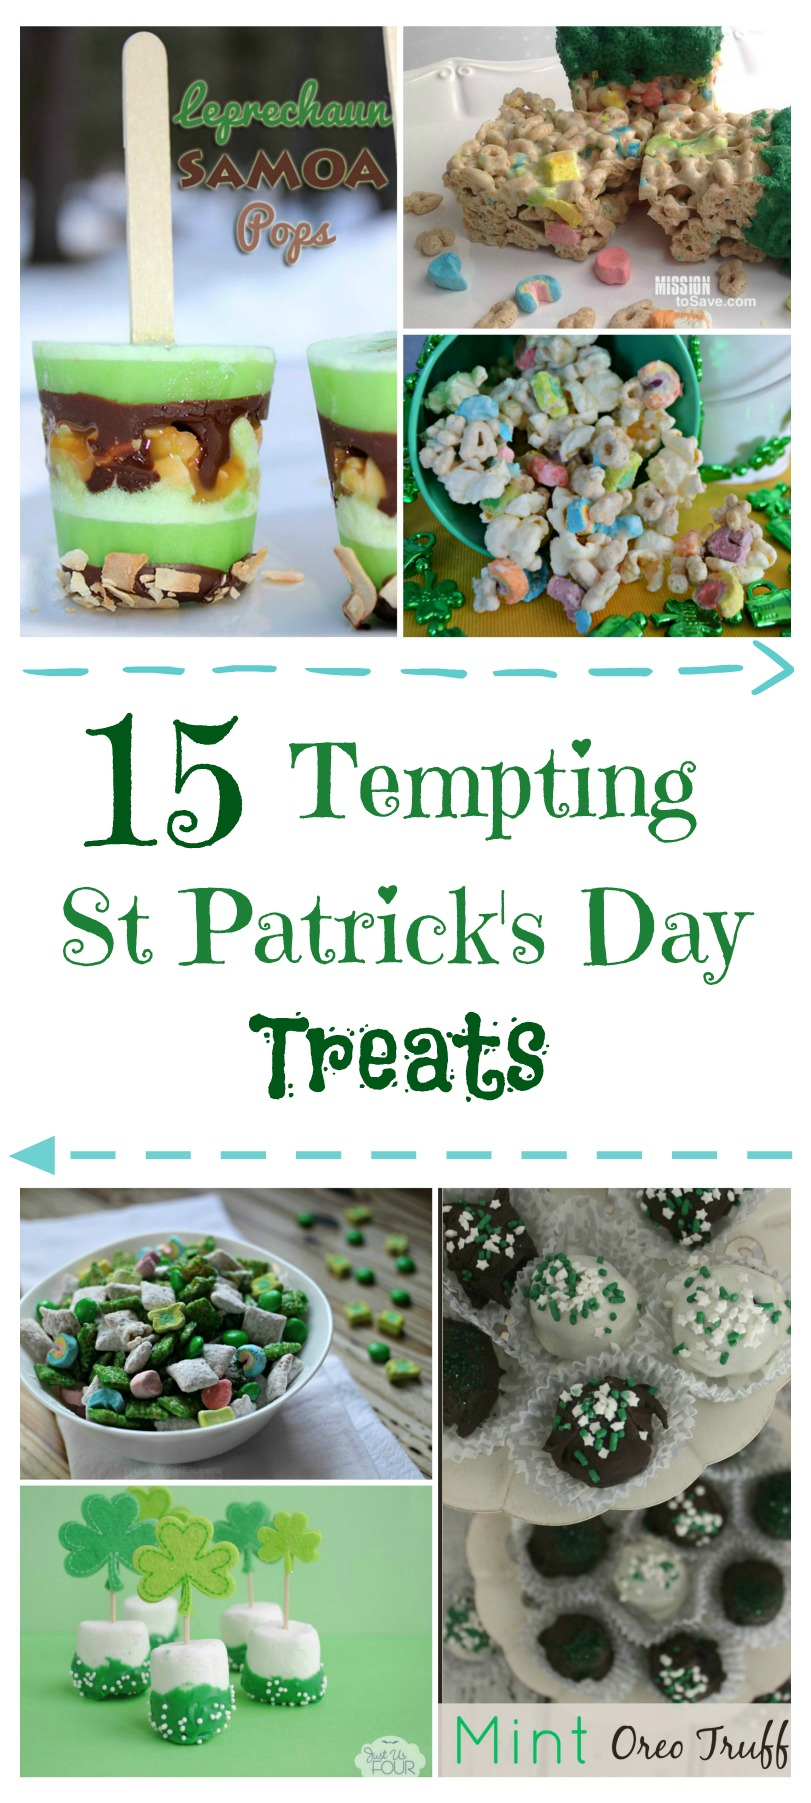 Looking for some yummy treats for a fun St. Patrick's Day party? Check out these 10 Tempting St Patrick's Day Treats here!